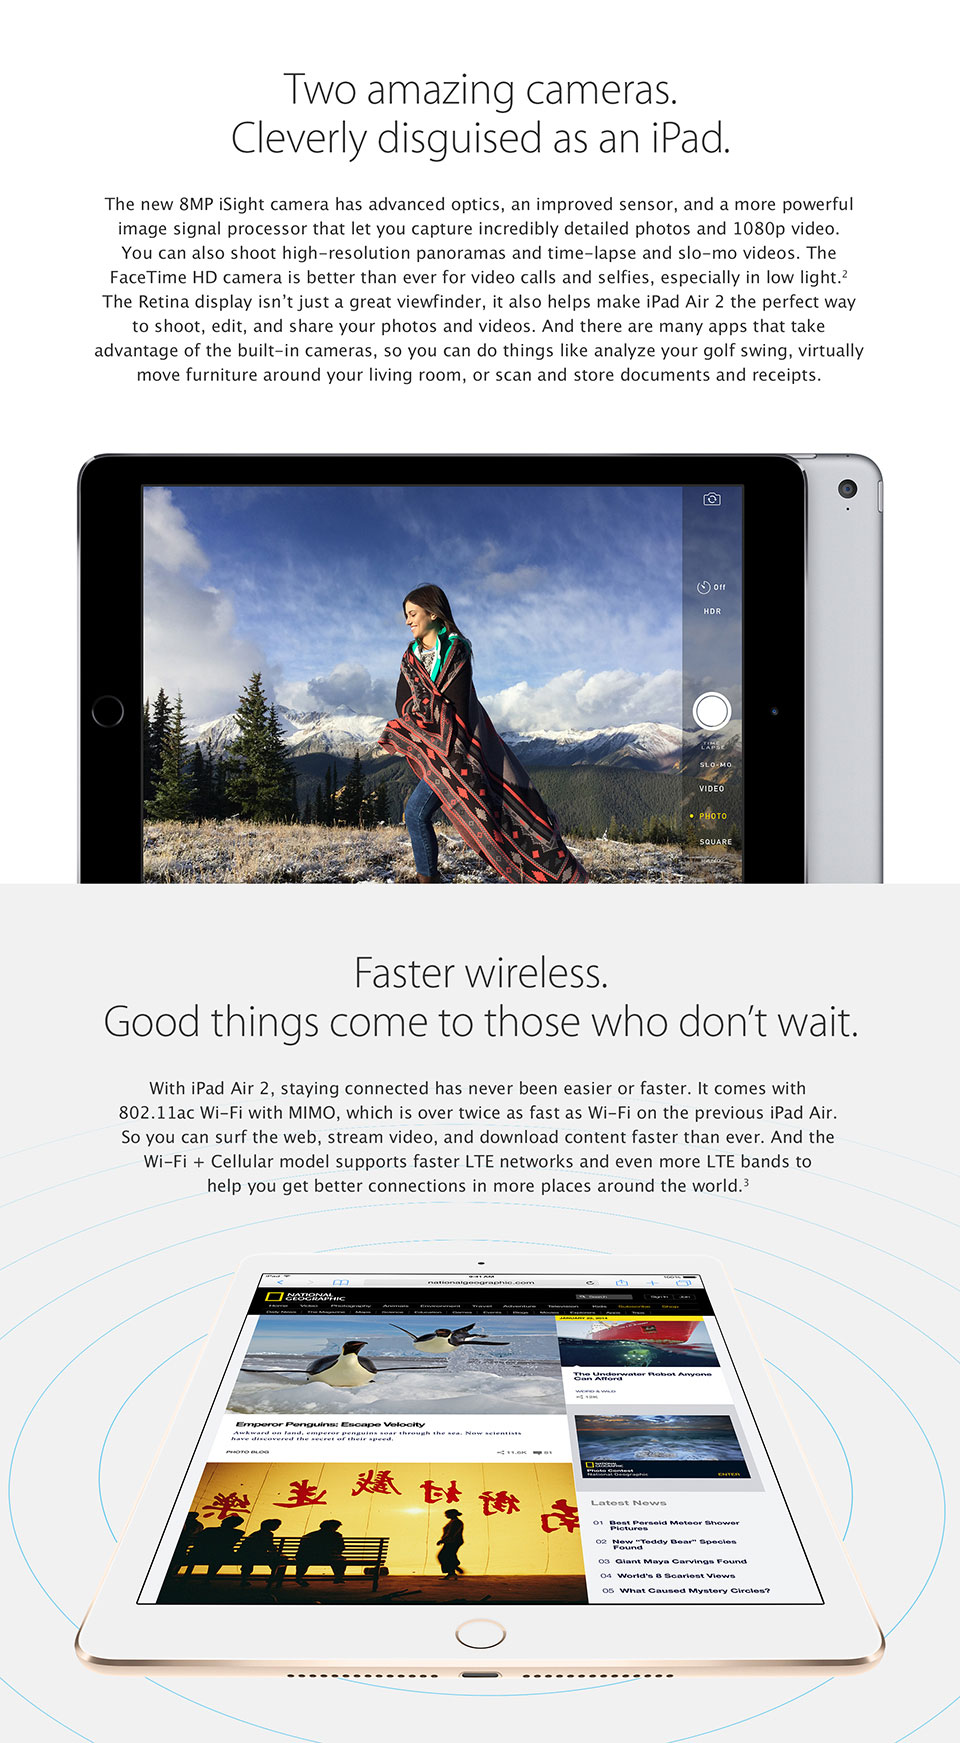 iPad Air 2. Two amazing cameras. Faster Wireless.